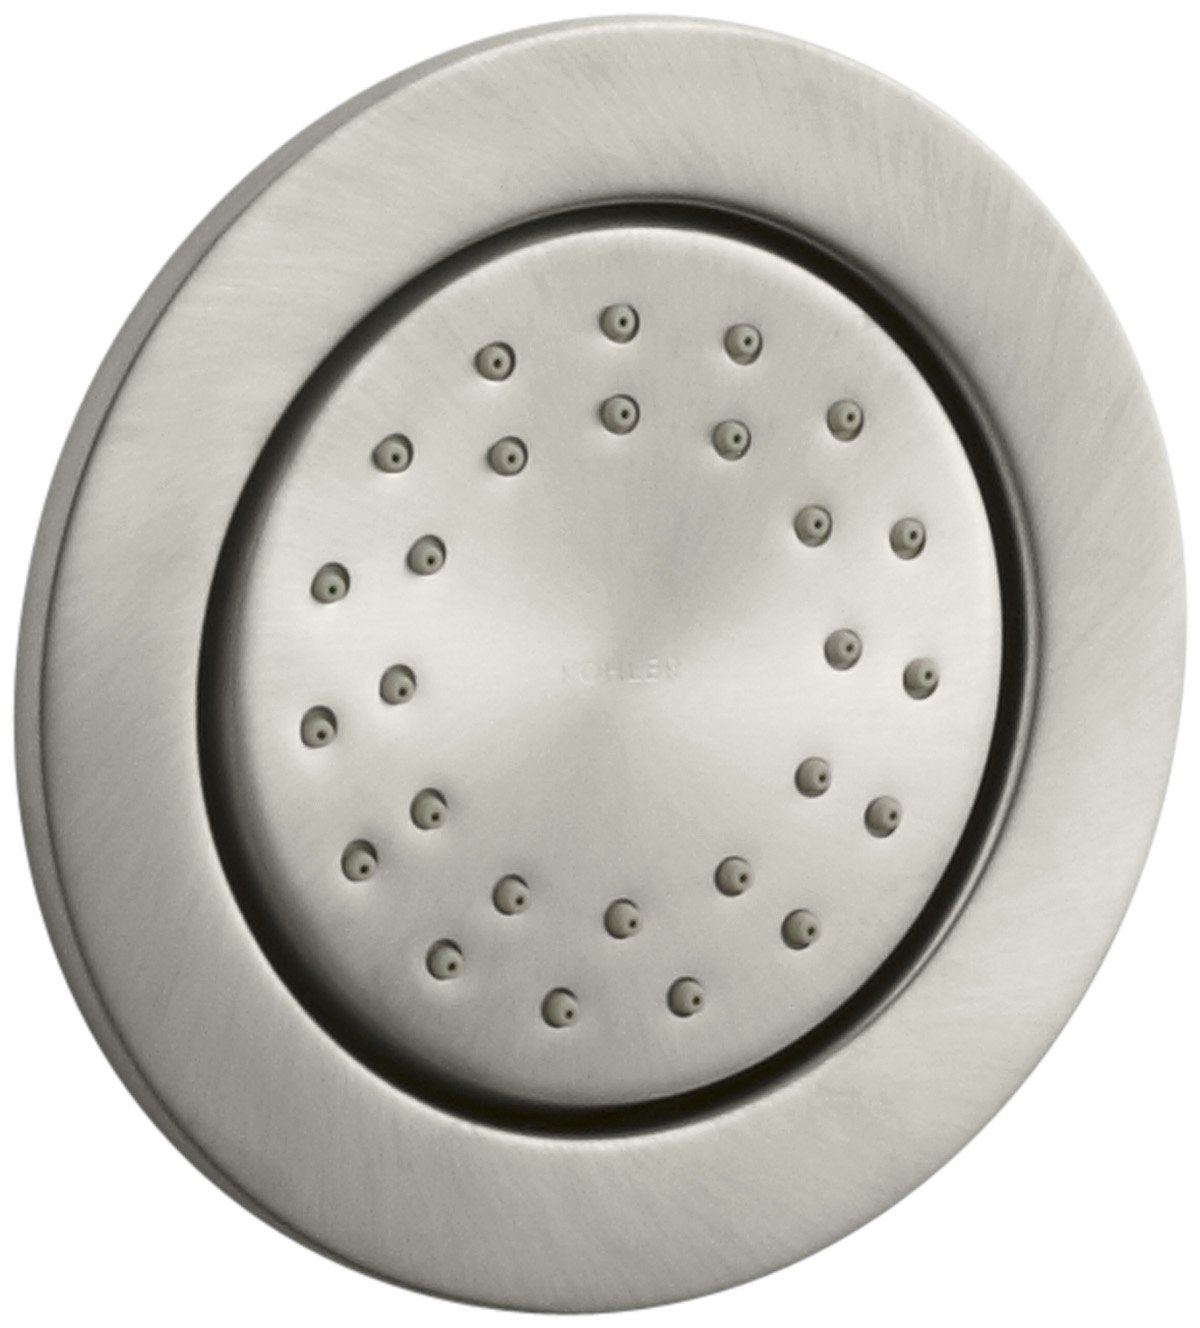 KOHLER K-8013-BN WaterTile Round 27-Nozzle Body Spray, Vibrant Brushed Nickel